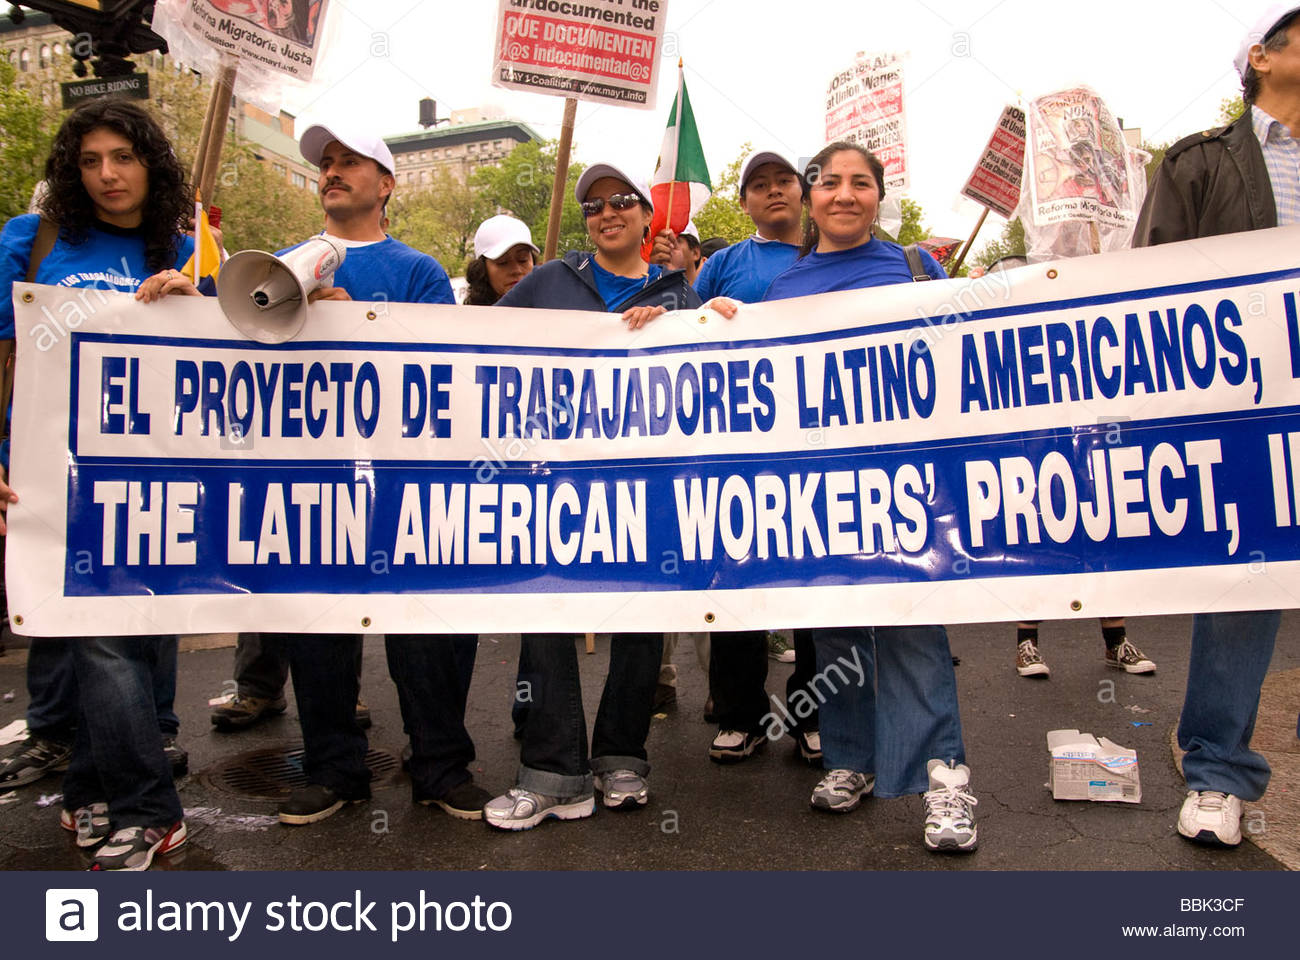 immigrants-march-for-amnesty-equal-rights-legalization-racial-equality-BBK3CF.jpg